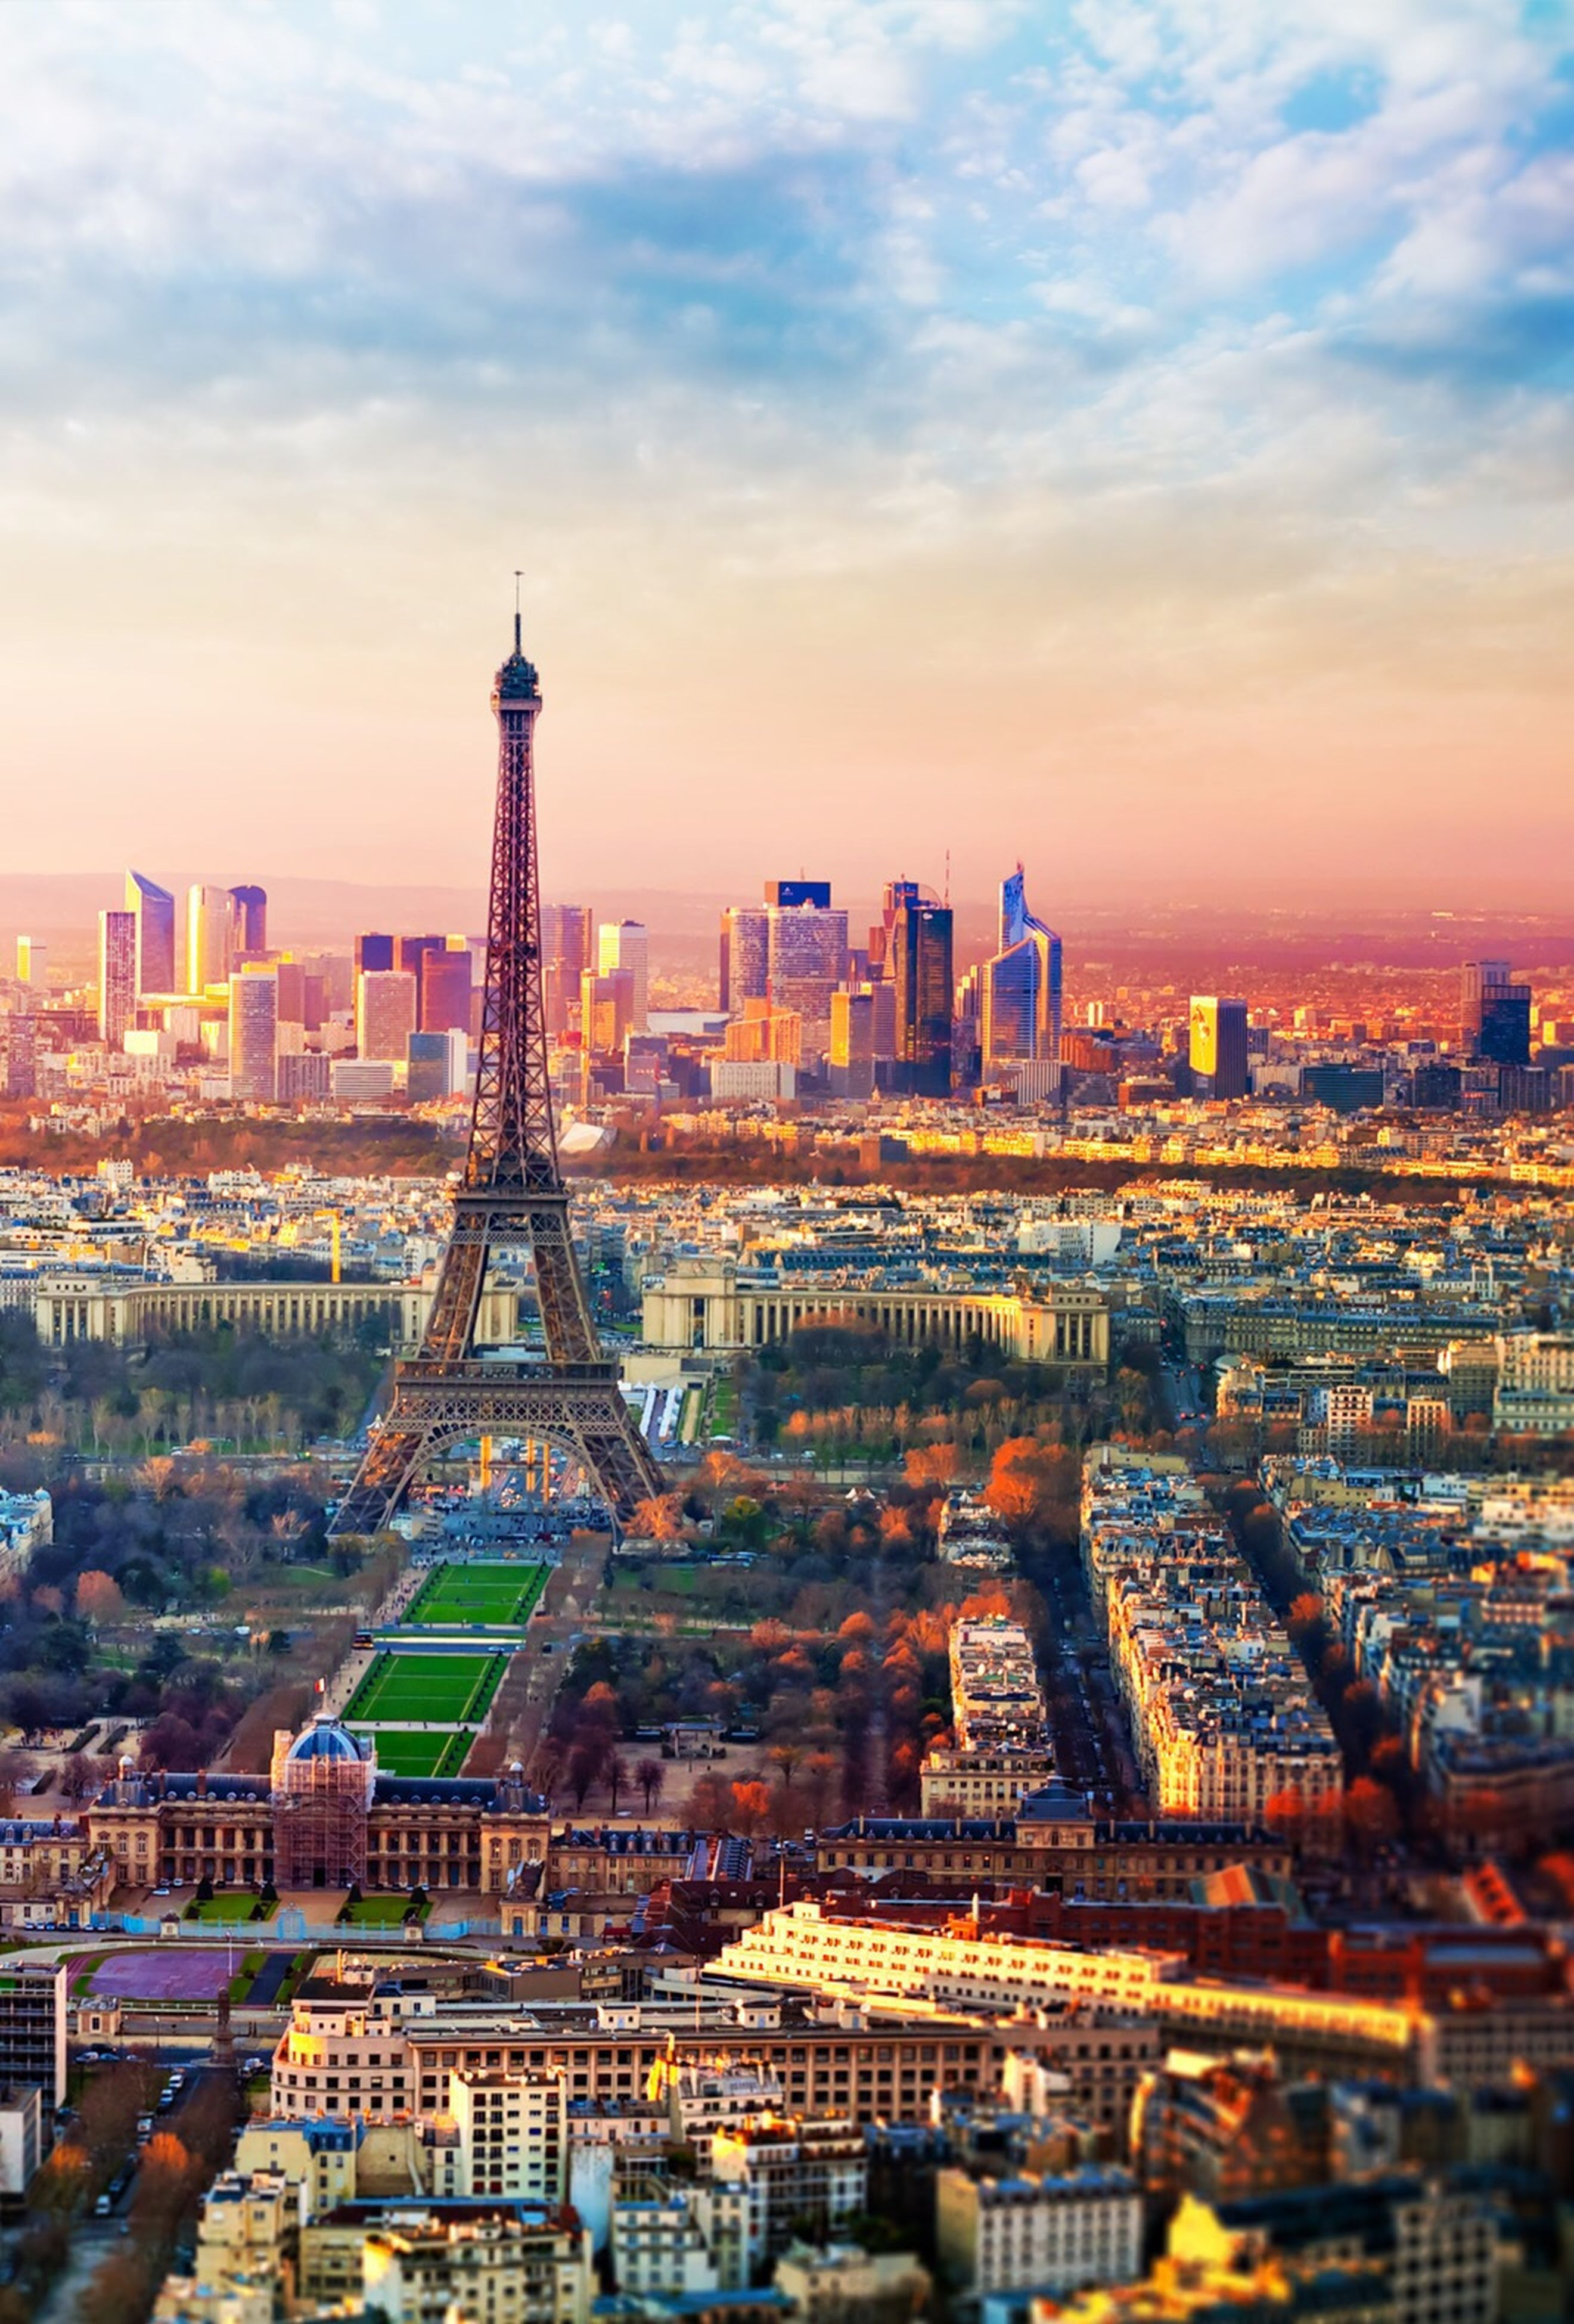 architecture, building exterior, built structure, city, cityscape, tower, tall - high, skyscraper, international landmark, capital cities, travel destinations, famous place, sky, tourism, sunset, travel, modern, crowded, city life, urban skyline